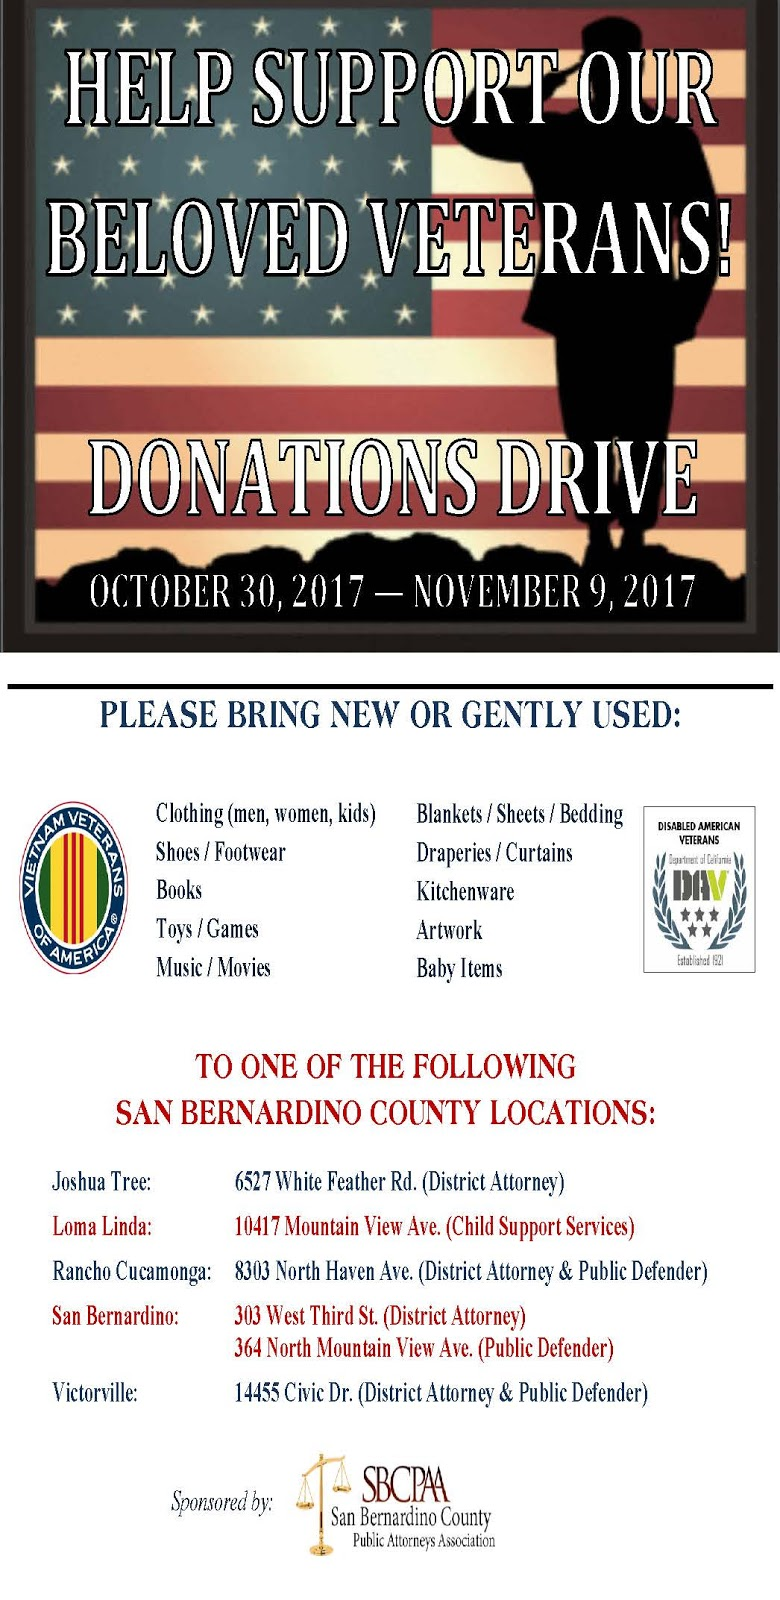 San bernardino county district attorneys office 2017 the san bernardino county public attorneys association sbcpaa will once again host a donations drive to benefit the vietnam veterans association vva aiddatafo Gallery